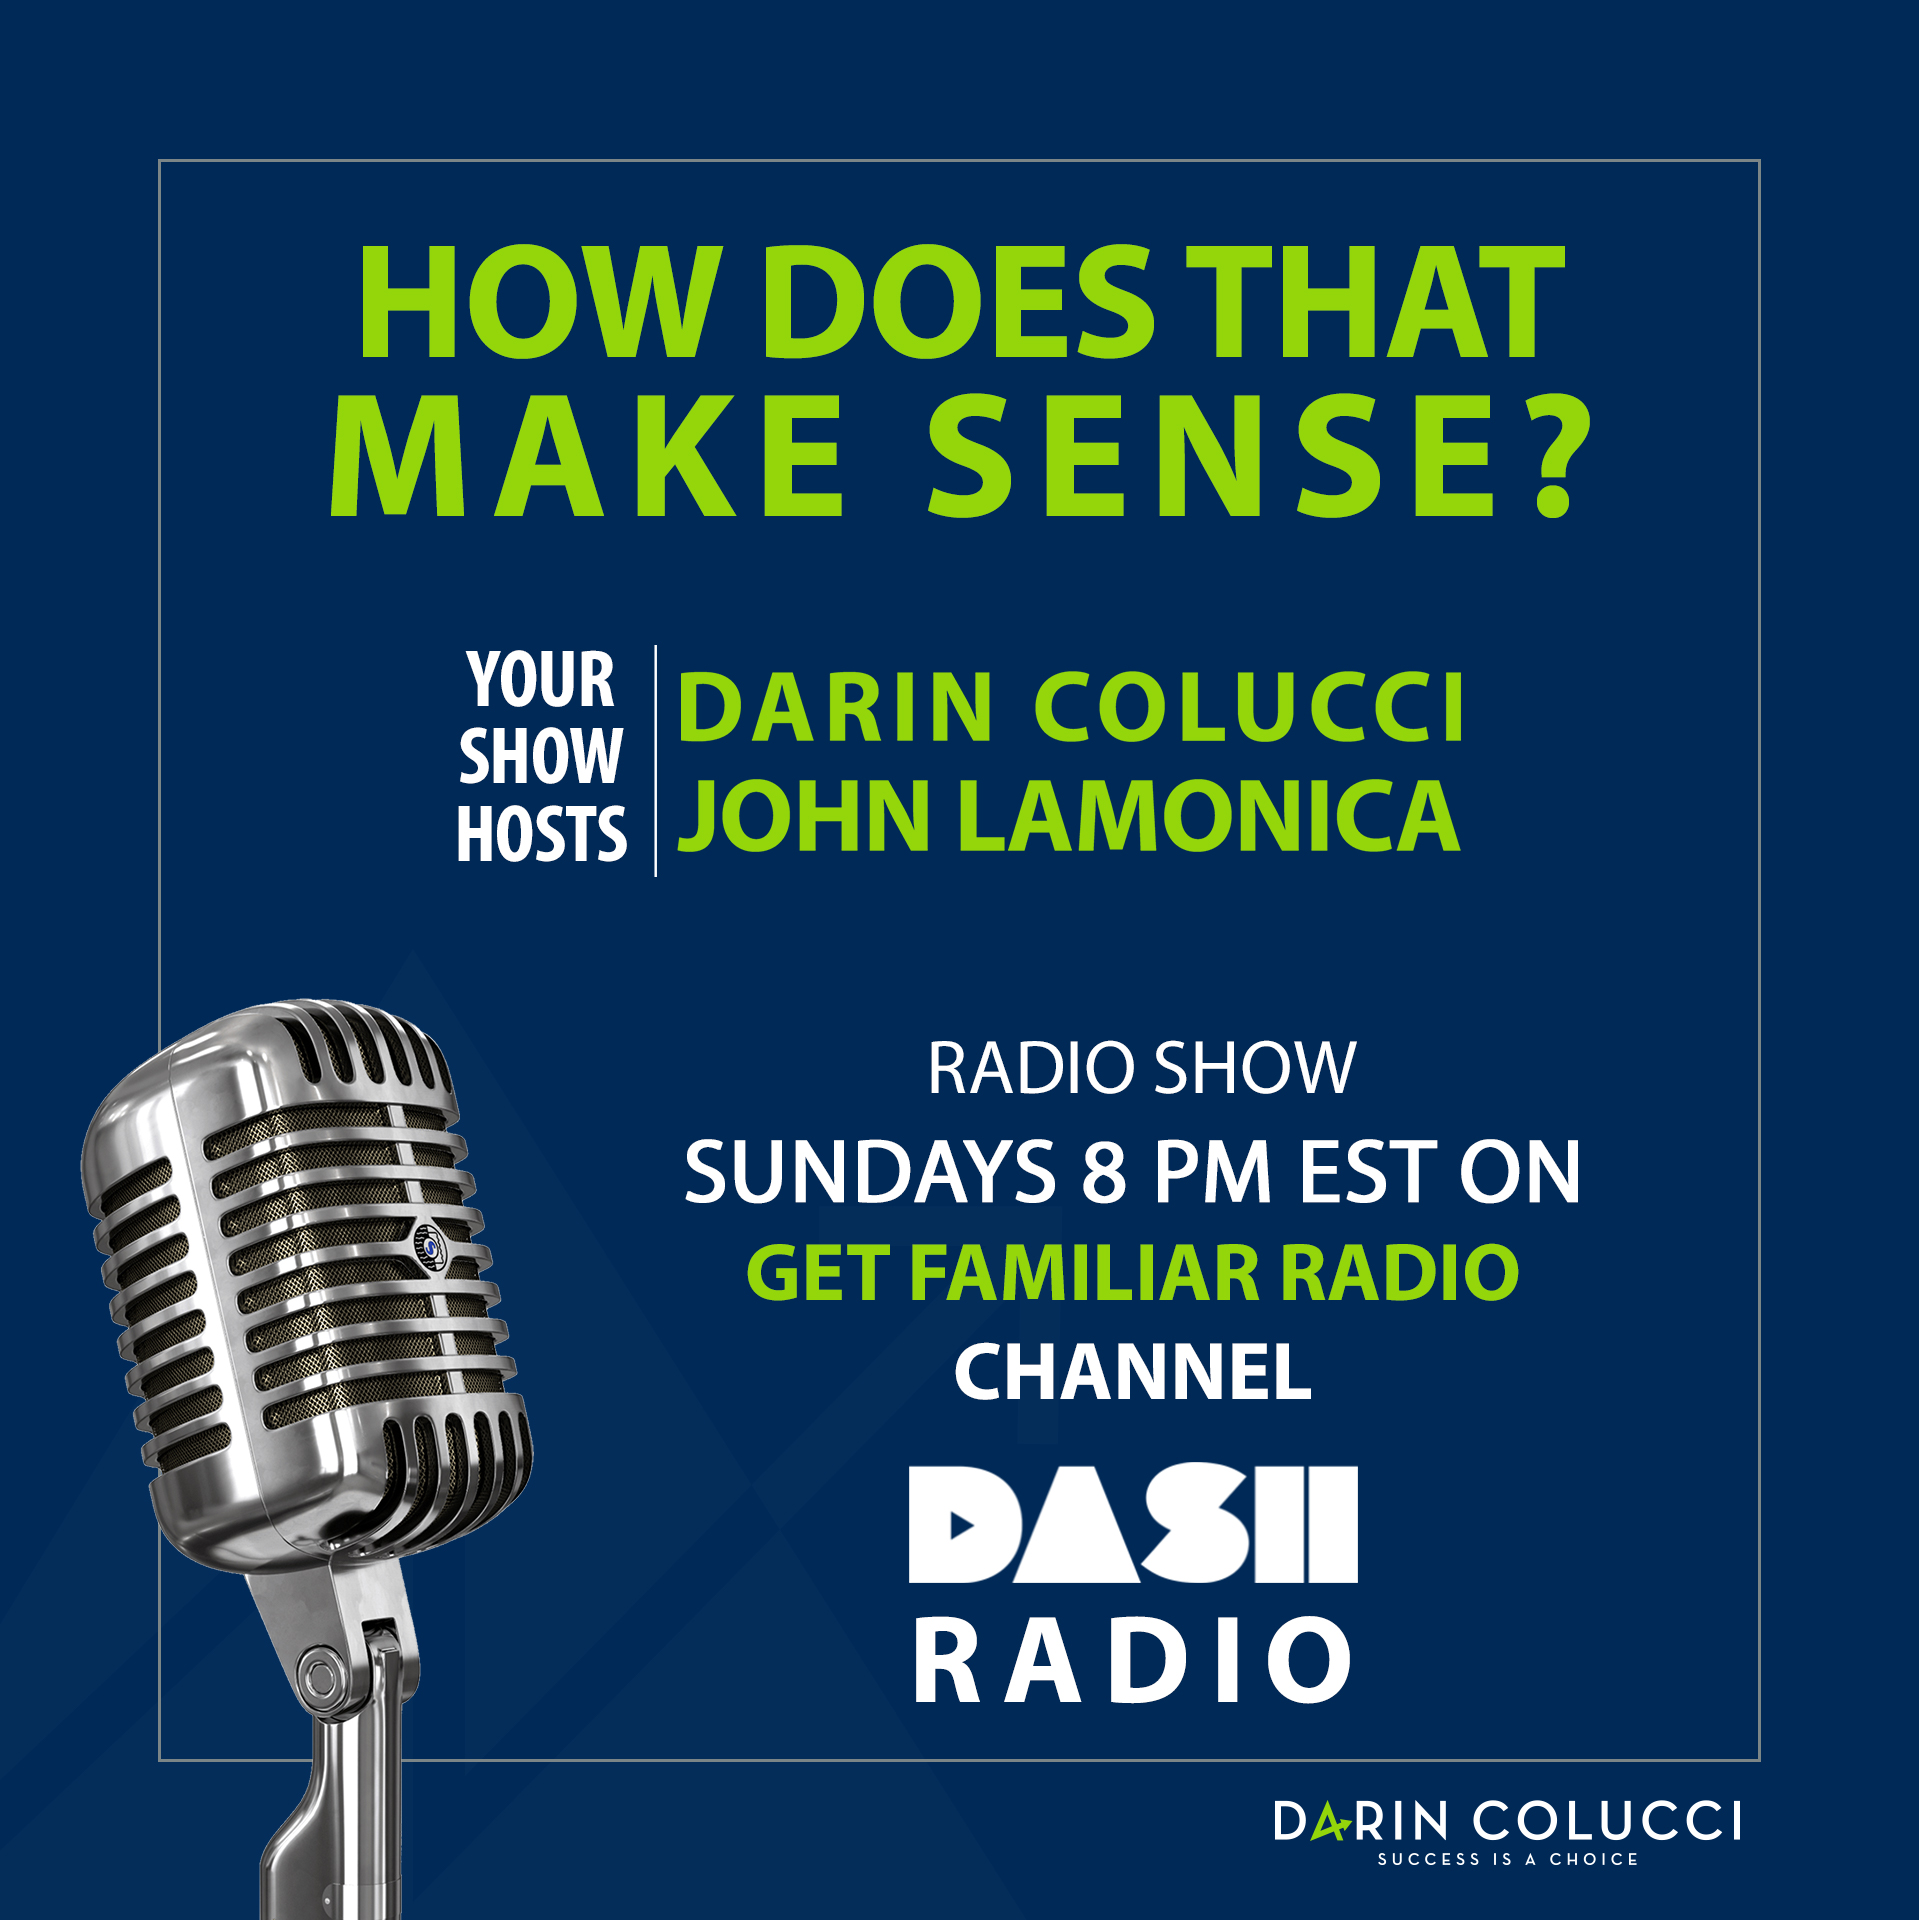 How Does That Make Sense? On Dash Radio